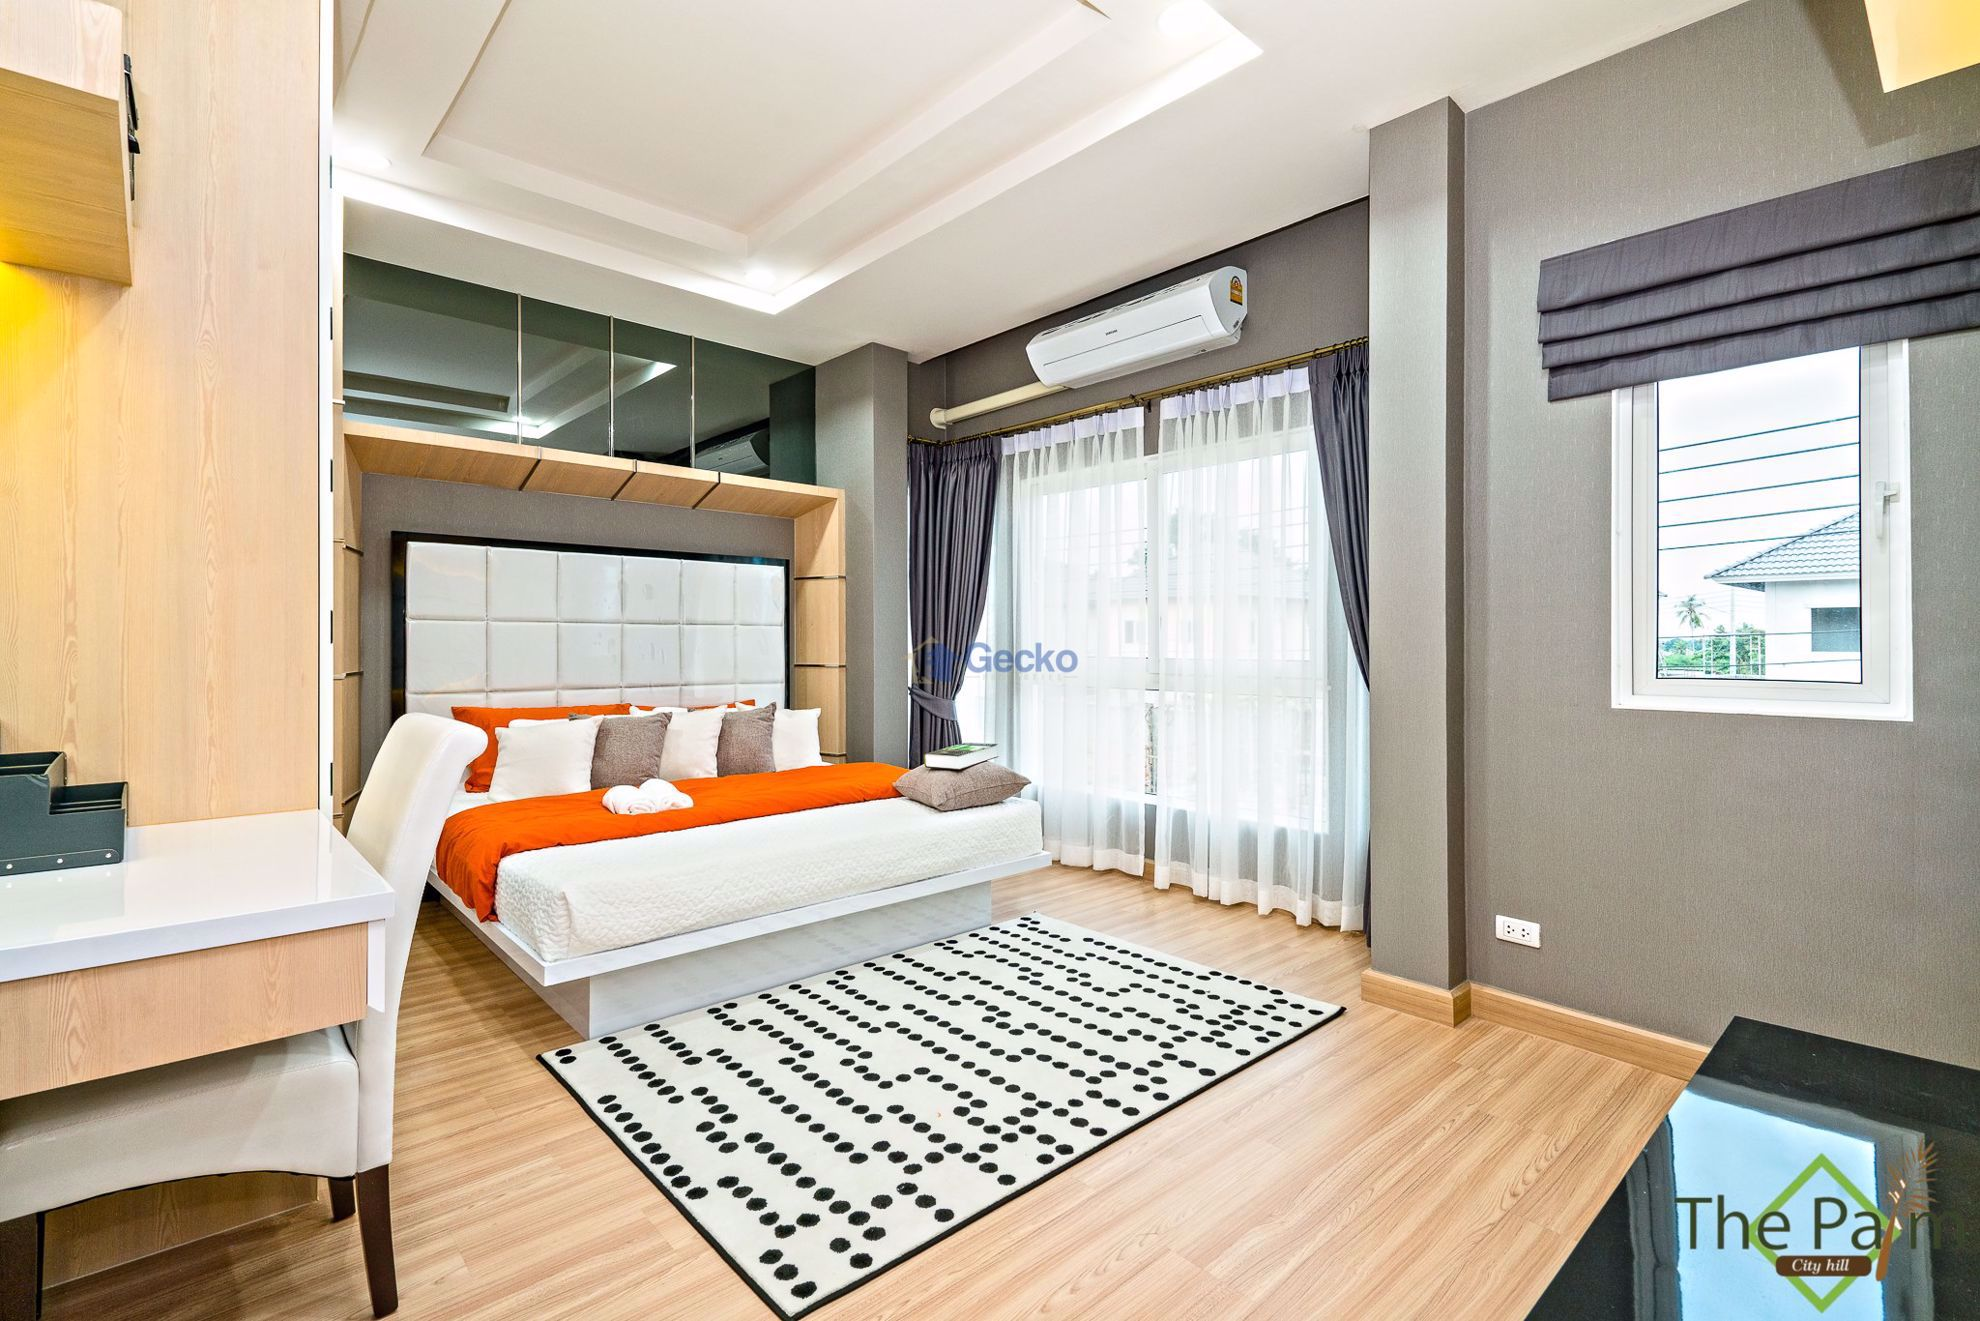 Picture of 3 Bedrooms bed in House in The Palm City Hill in East Pattaya H009049